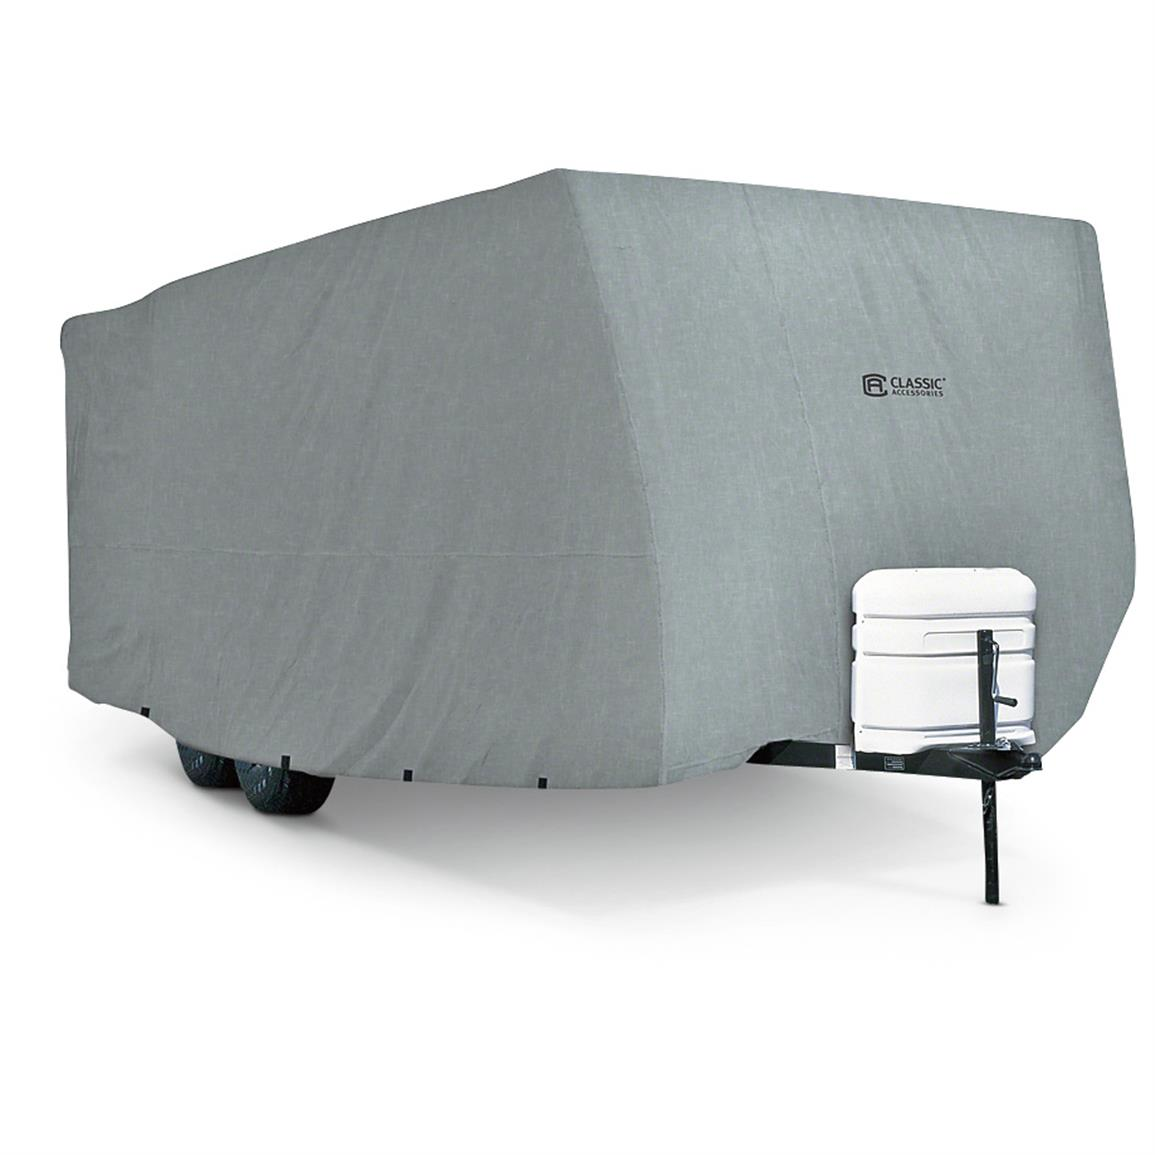 Classic Accessories Travel Trailer Covers